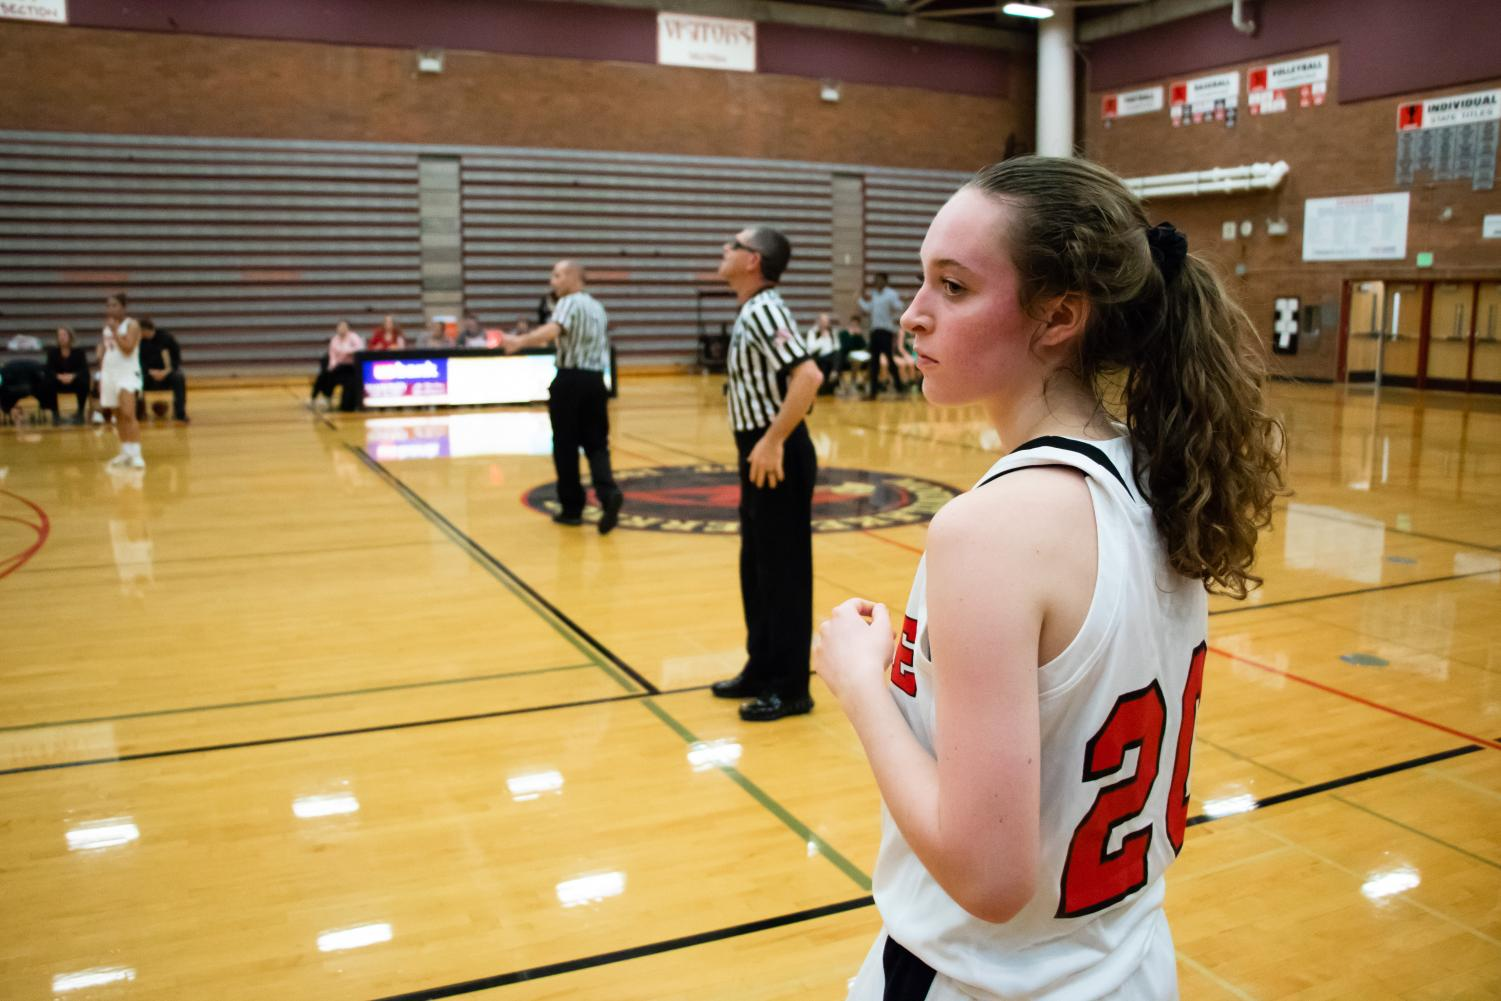 Sophomore+guard+Kaiya+Beavin+looks+on+as+she+prepares+to+inbound+the+basketball+for+the+Hawks.+